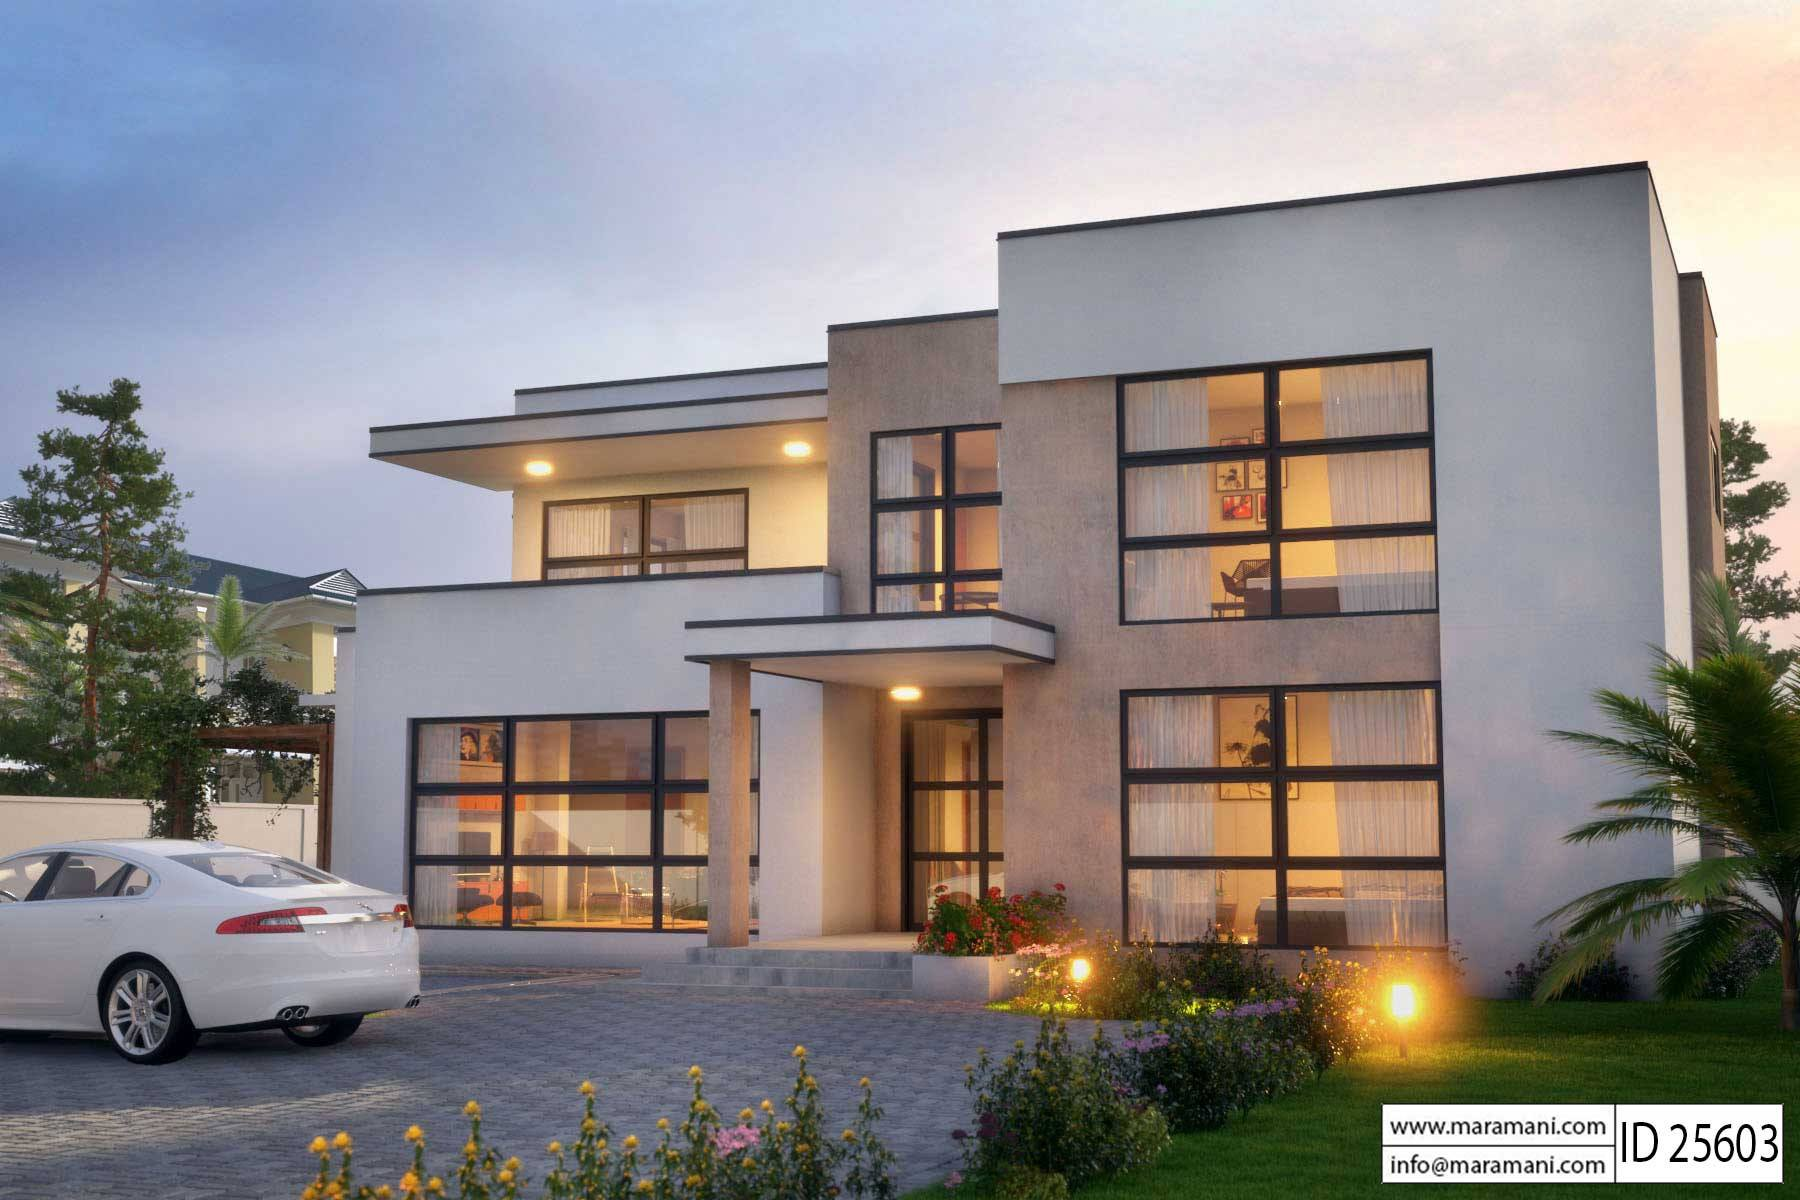 Modern 5 bedroom house design id 25603 floor plans by for Beautiful 5 bedroom house plans with pictures